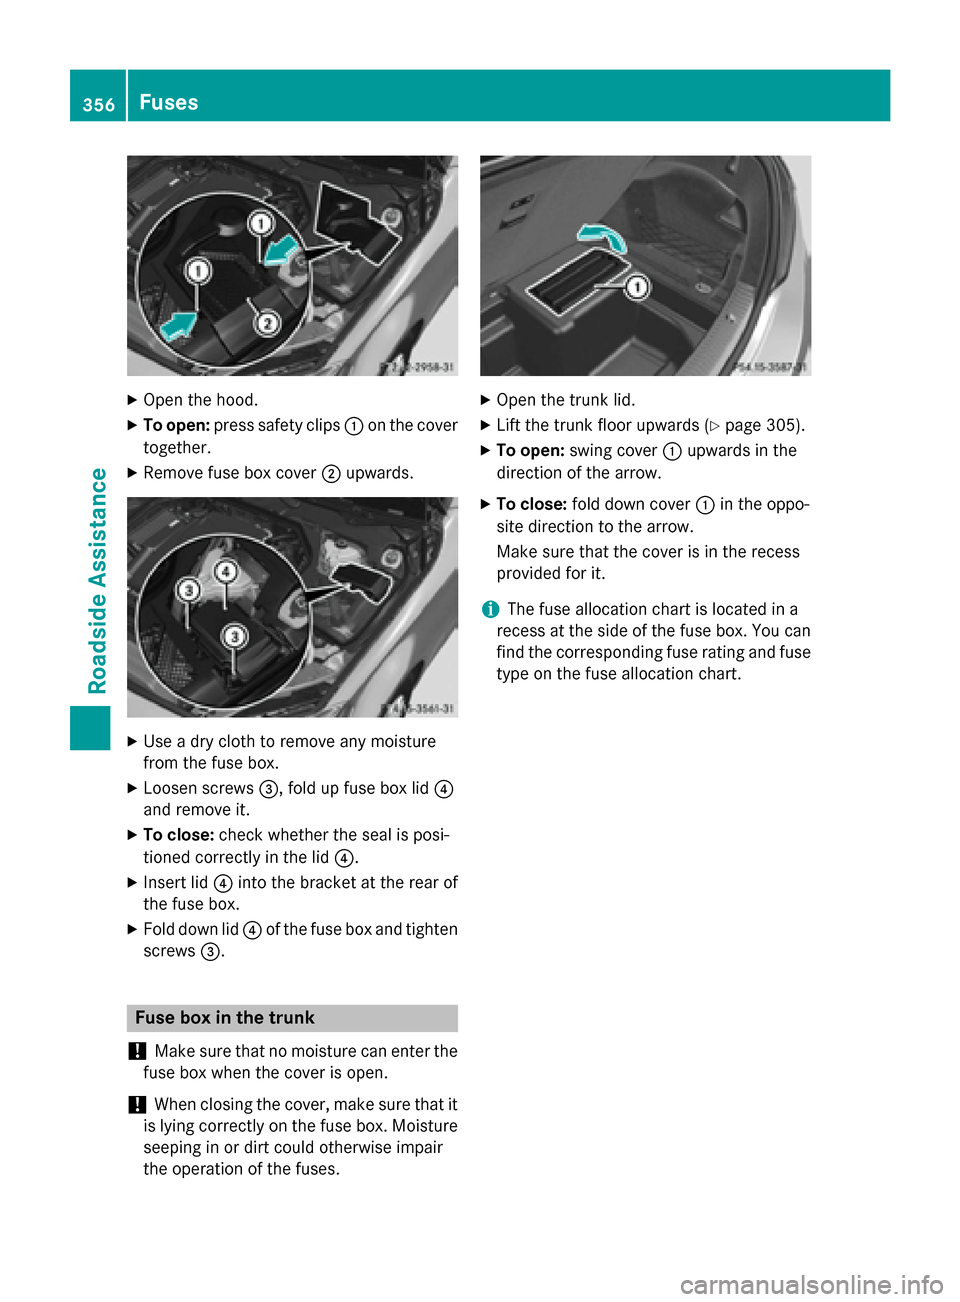 MERCEDES-BENZ C-Class SEDAN 2015 W205 Owners Manual, Page 358